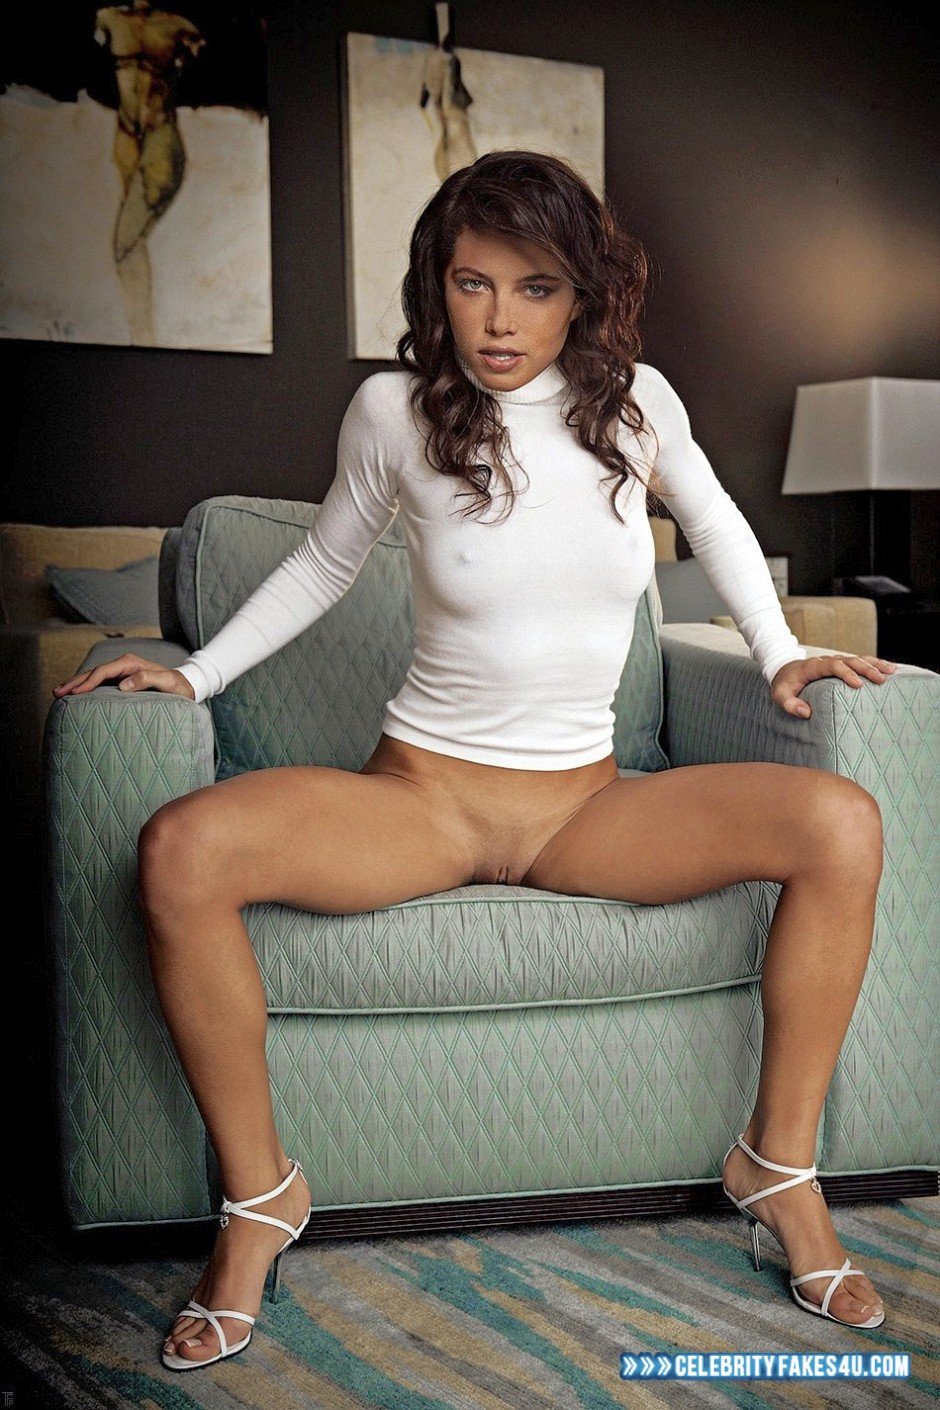 Jessica biel nude vagina me? Certainly